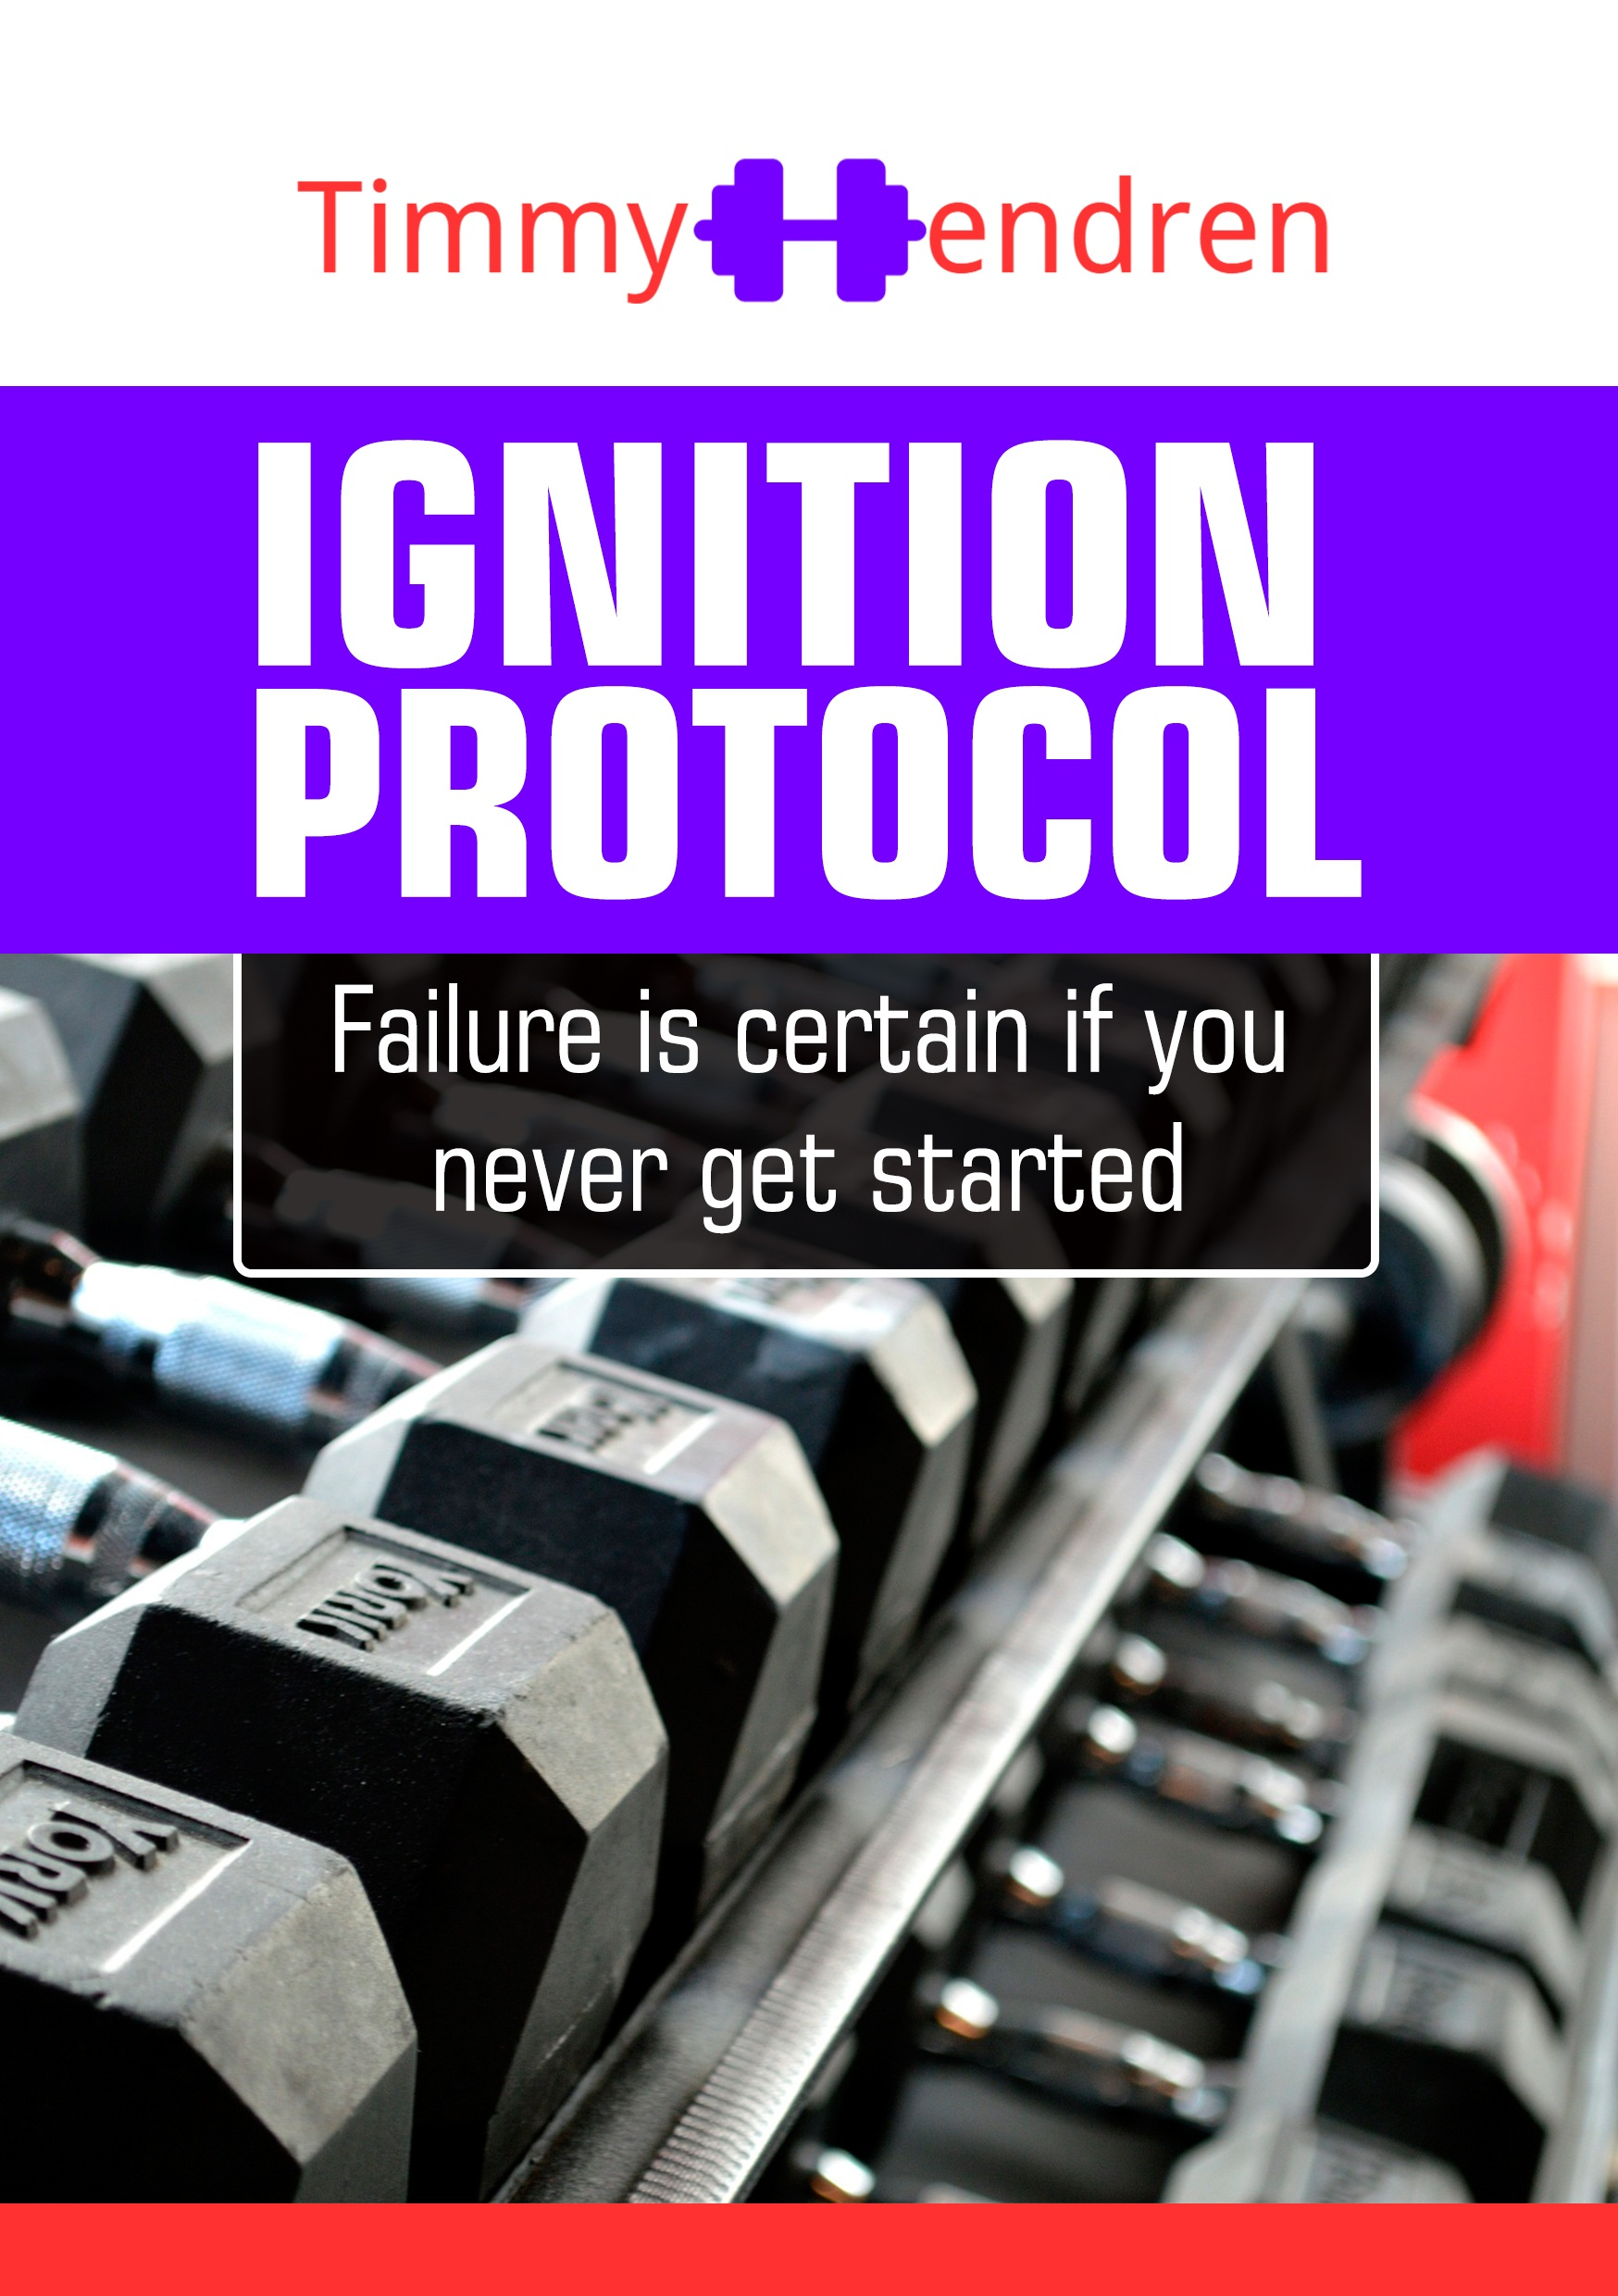 Ignition Protocol. Available for free (limited time) 4.19.19 on Amazon